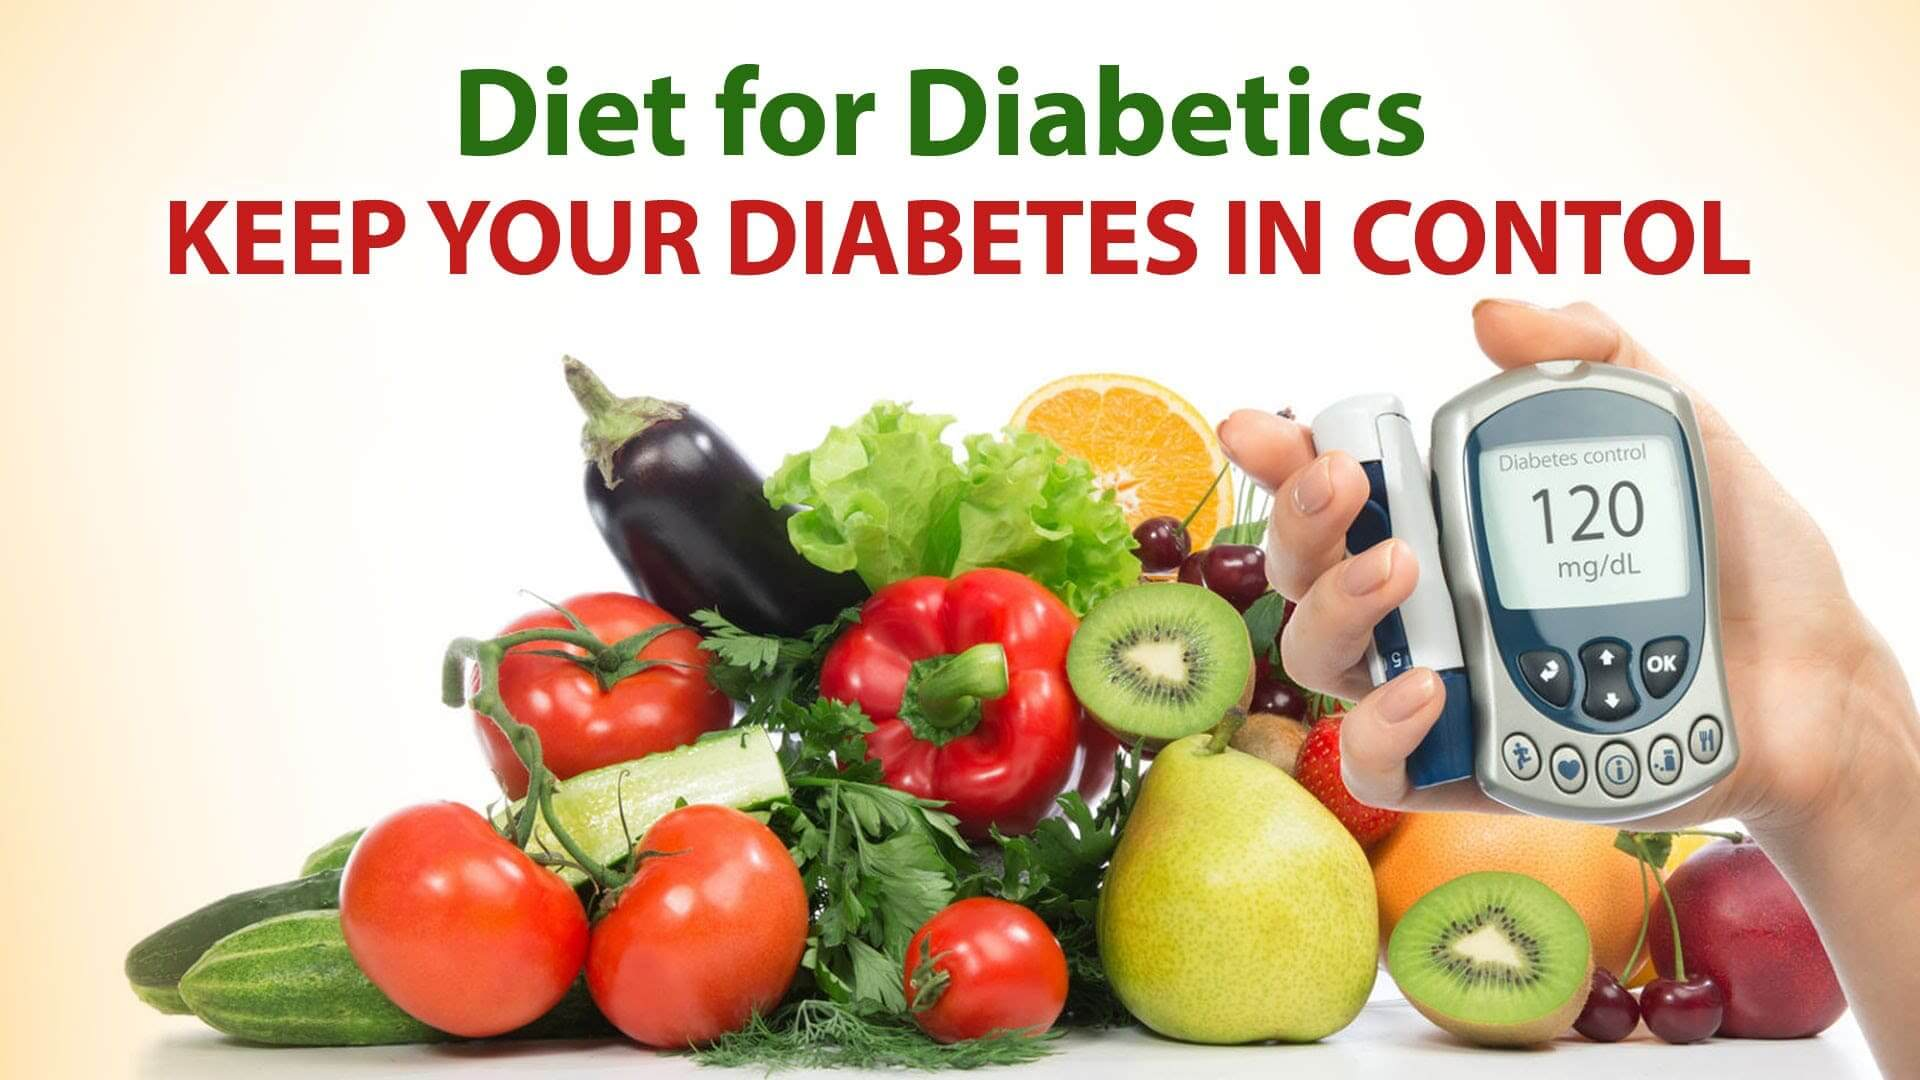 Diabetic diet: guidelines for healthy eating